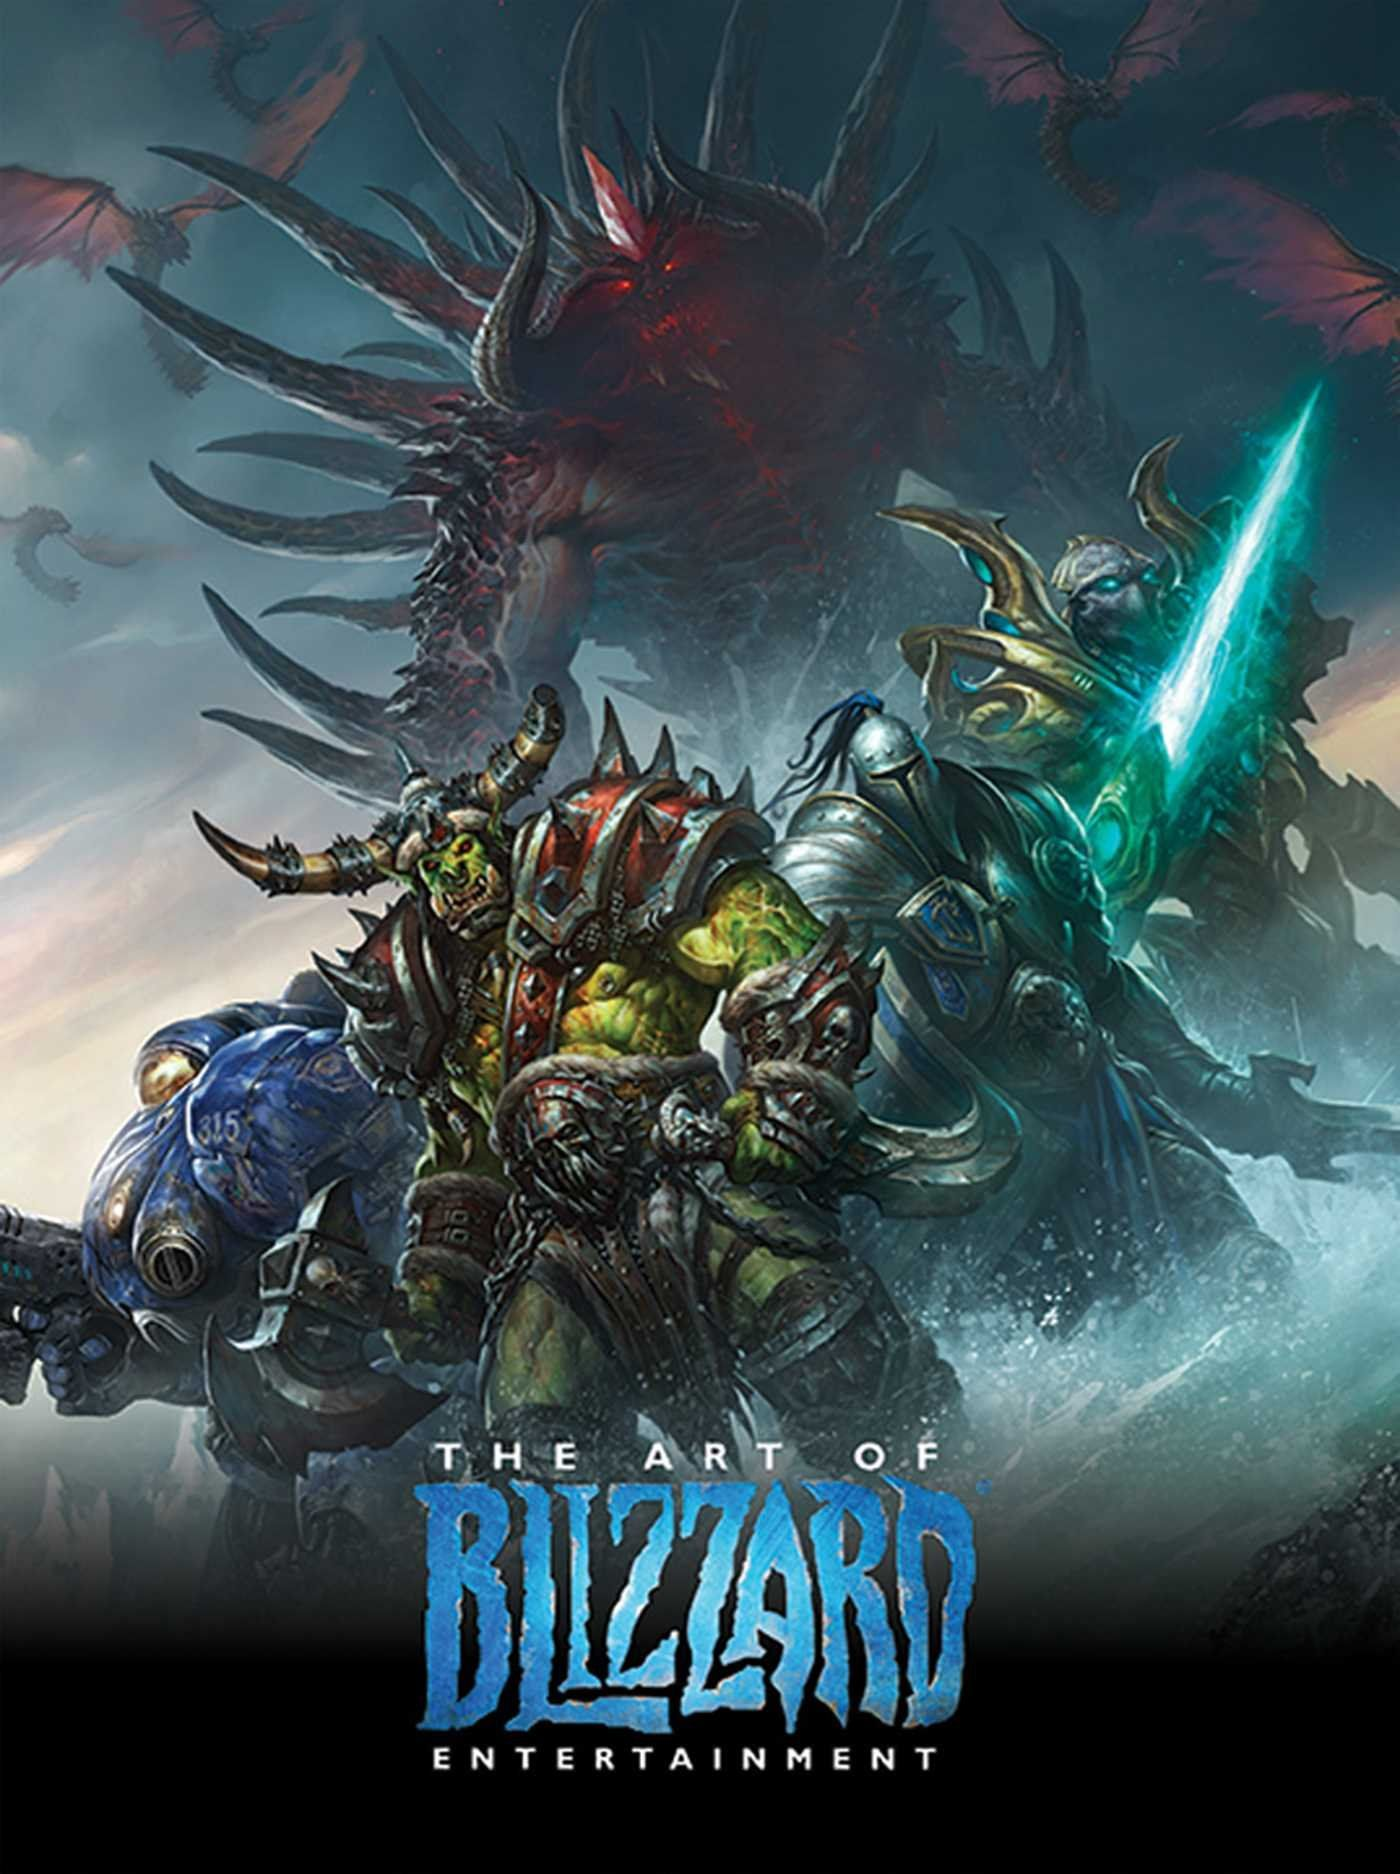 Descargar Libros Warcraft The Art Of Blizzard Amazon Es Blizzard Entertainment Libros En